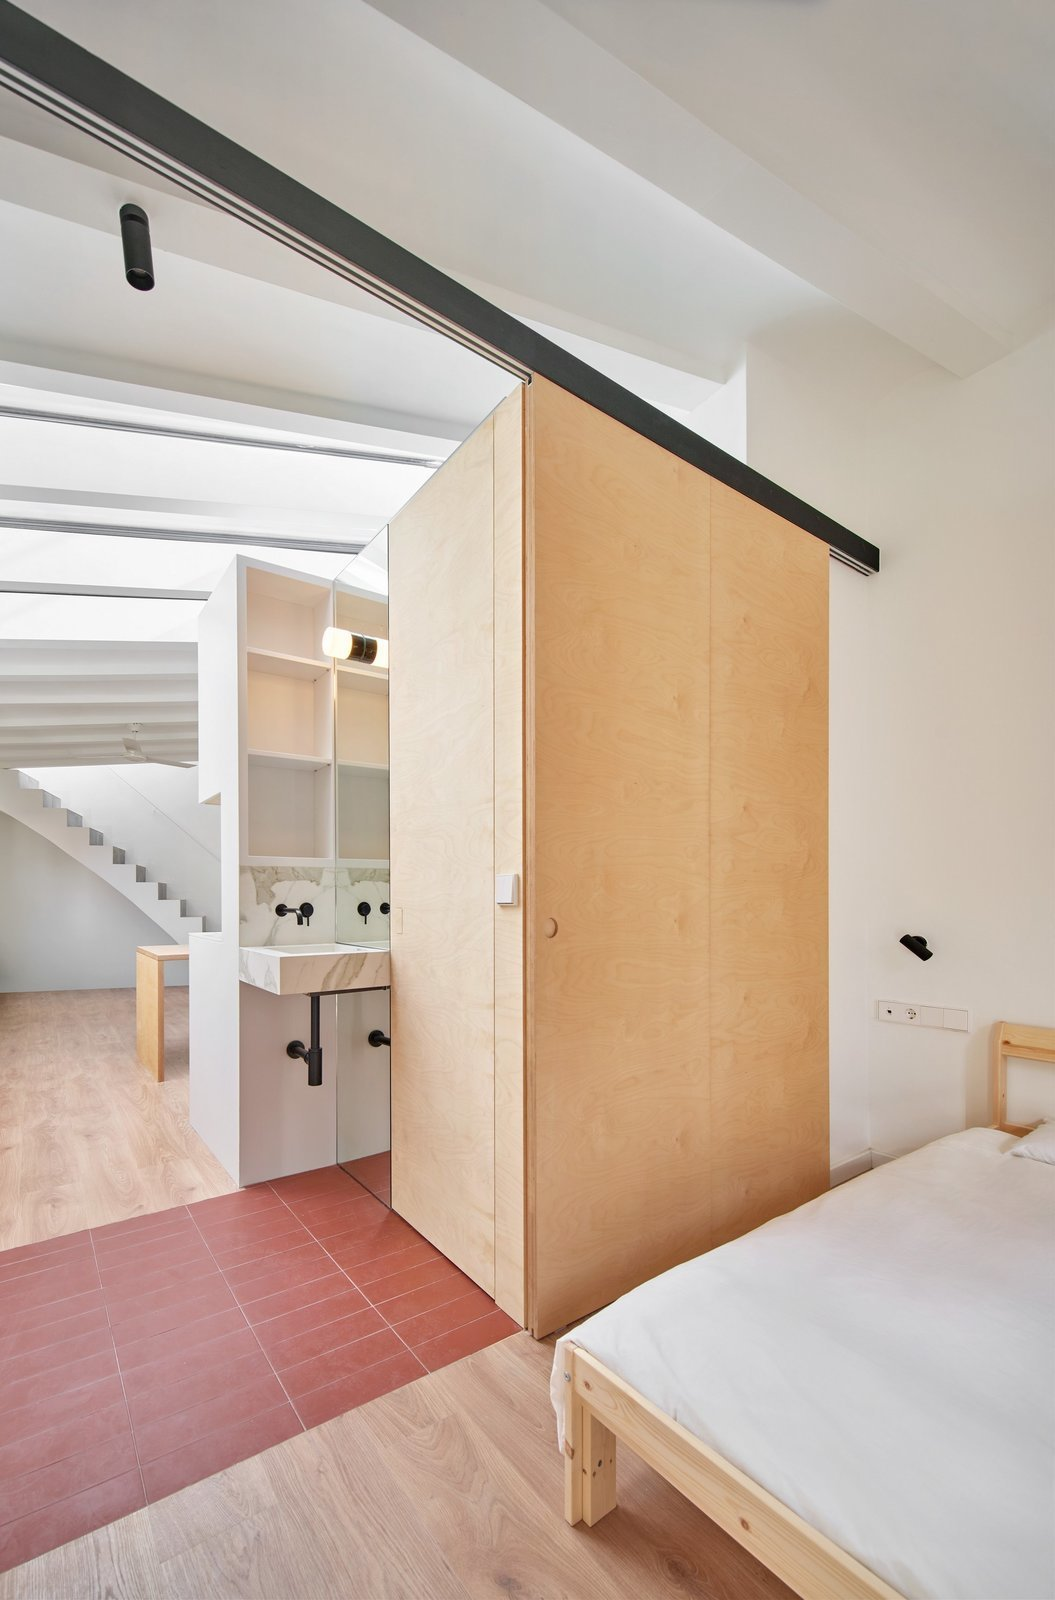 Bedroom, Track Lighting, Ceiling Lighting, Medium Hardwood Floor, and Bed  Photo 7 of 17 in Picture Windows and Sliding Doors Work Magic in This Cozy Barcelona Home